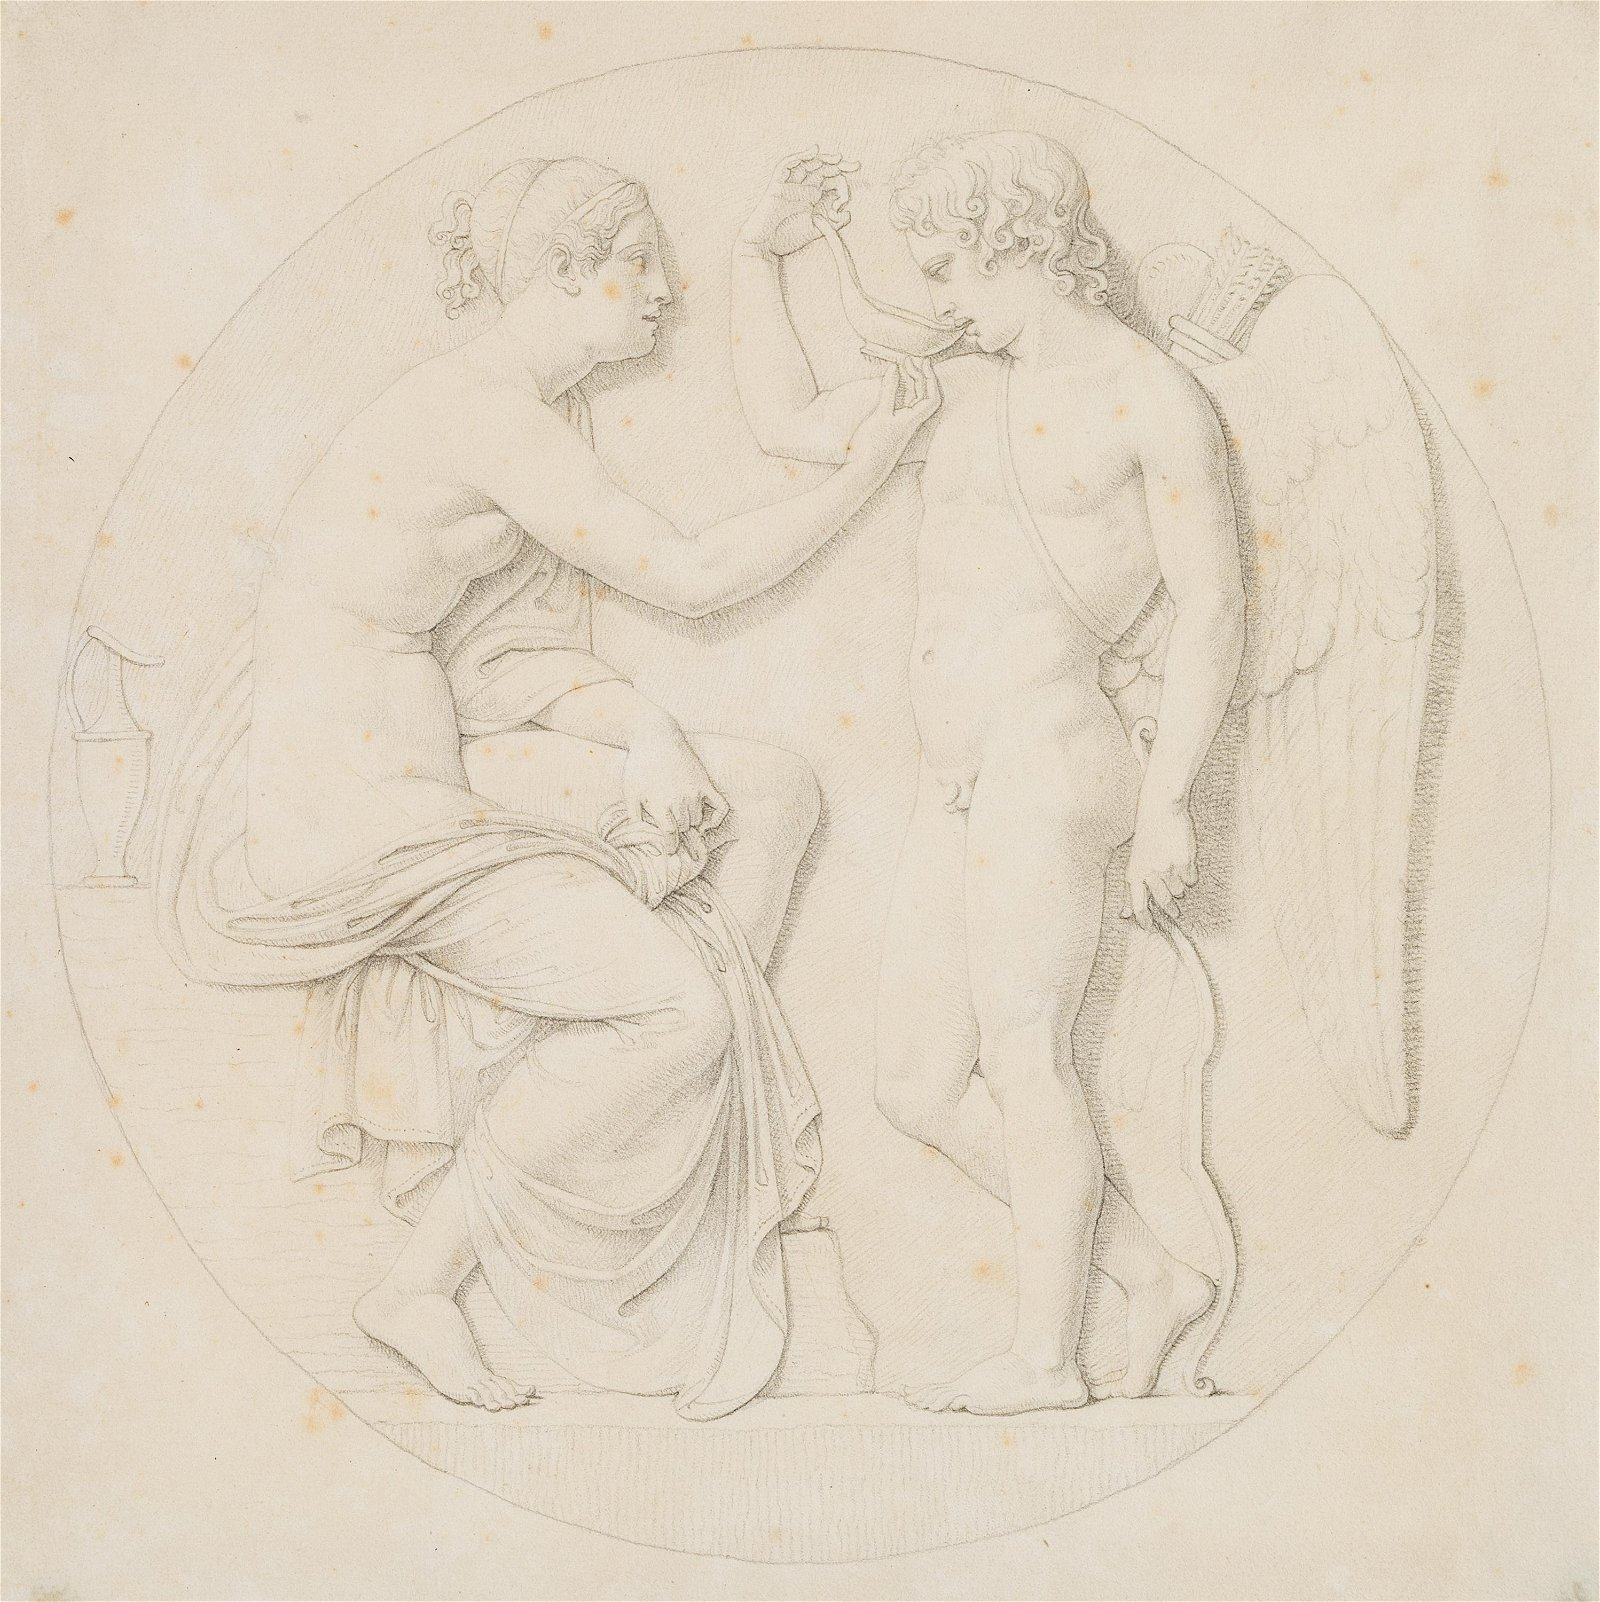 after R.SCHADOW, Draft for a relief medallion, Hebe